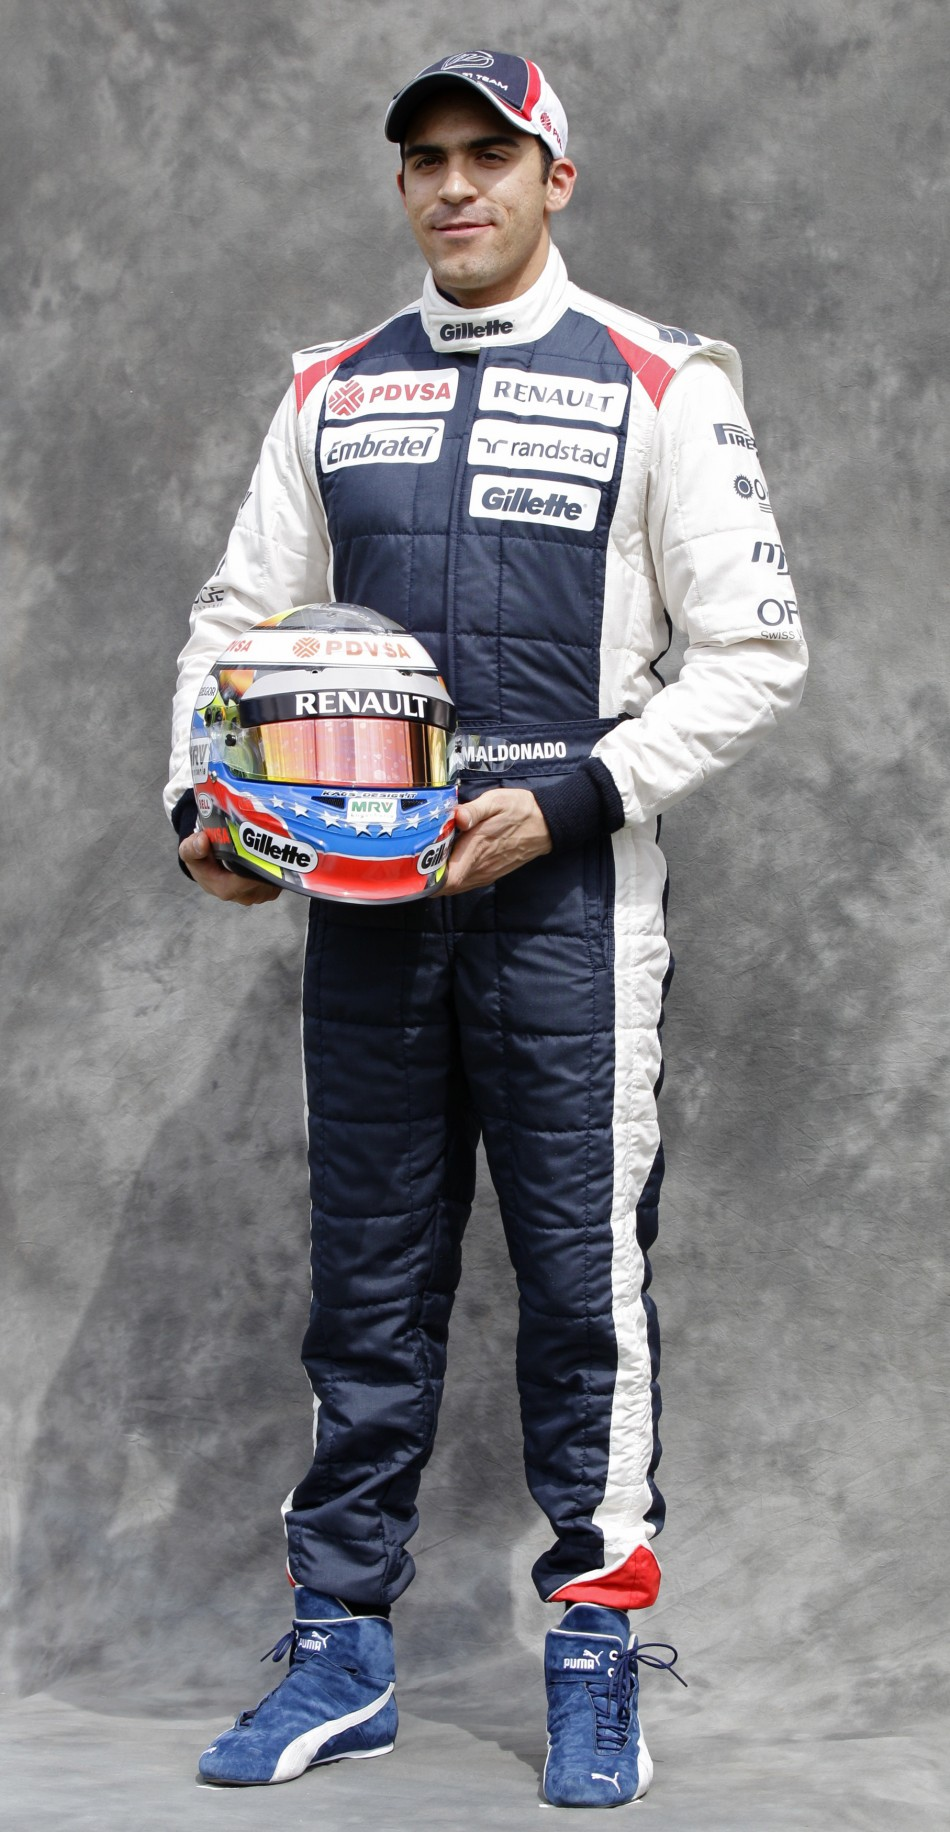 Williams Formula One driver Maldonado poses prior to the Australian F1 Grand Prix at the Albert Park circuit in Melbourne